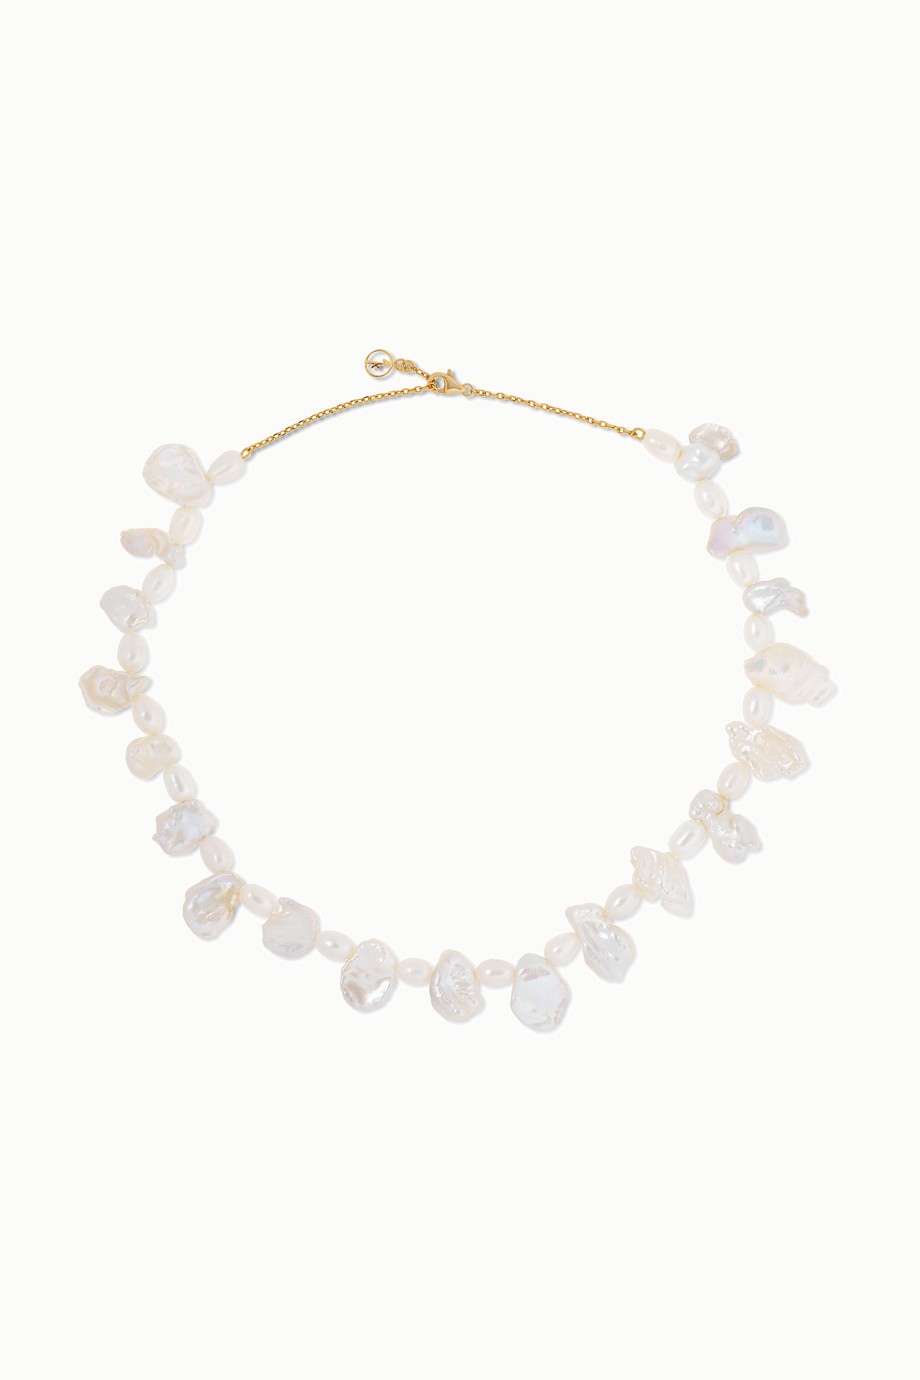 Anissa Kermiche Gold-plated pearl necklace